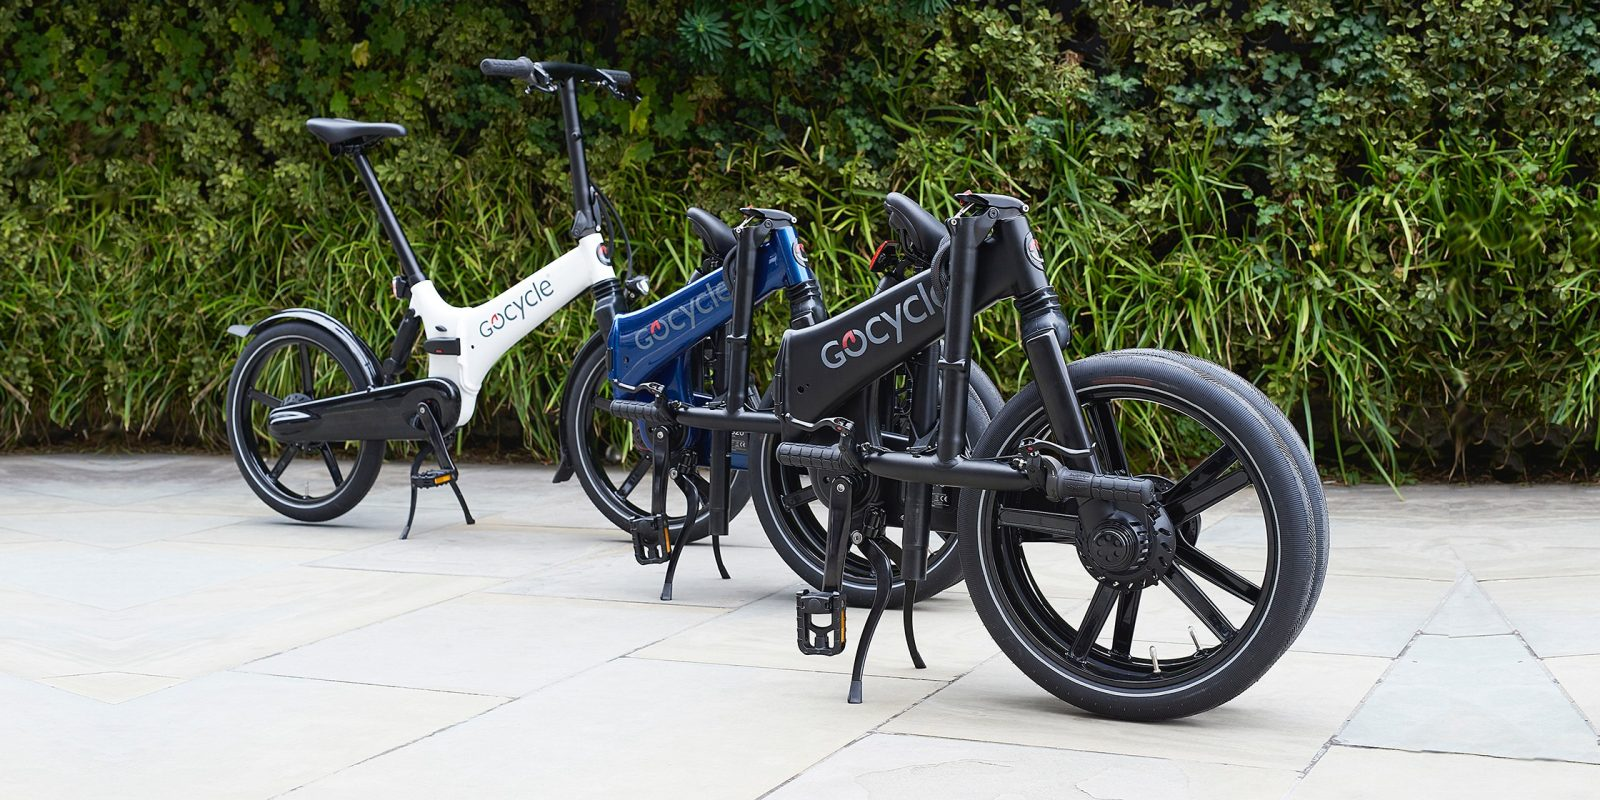 a8434147e27 Gocycle s new fast folding electric bicycle could be the best folding  commuter yet